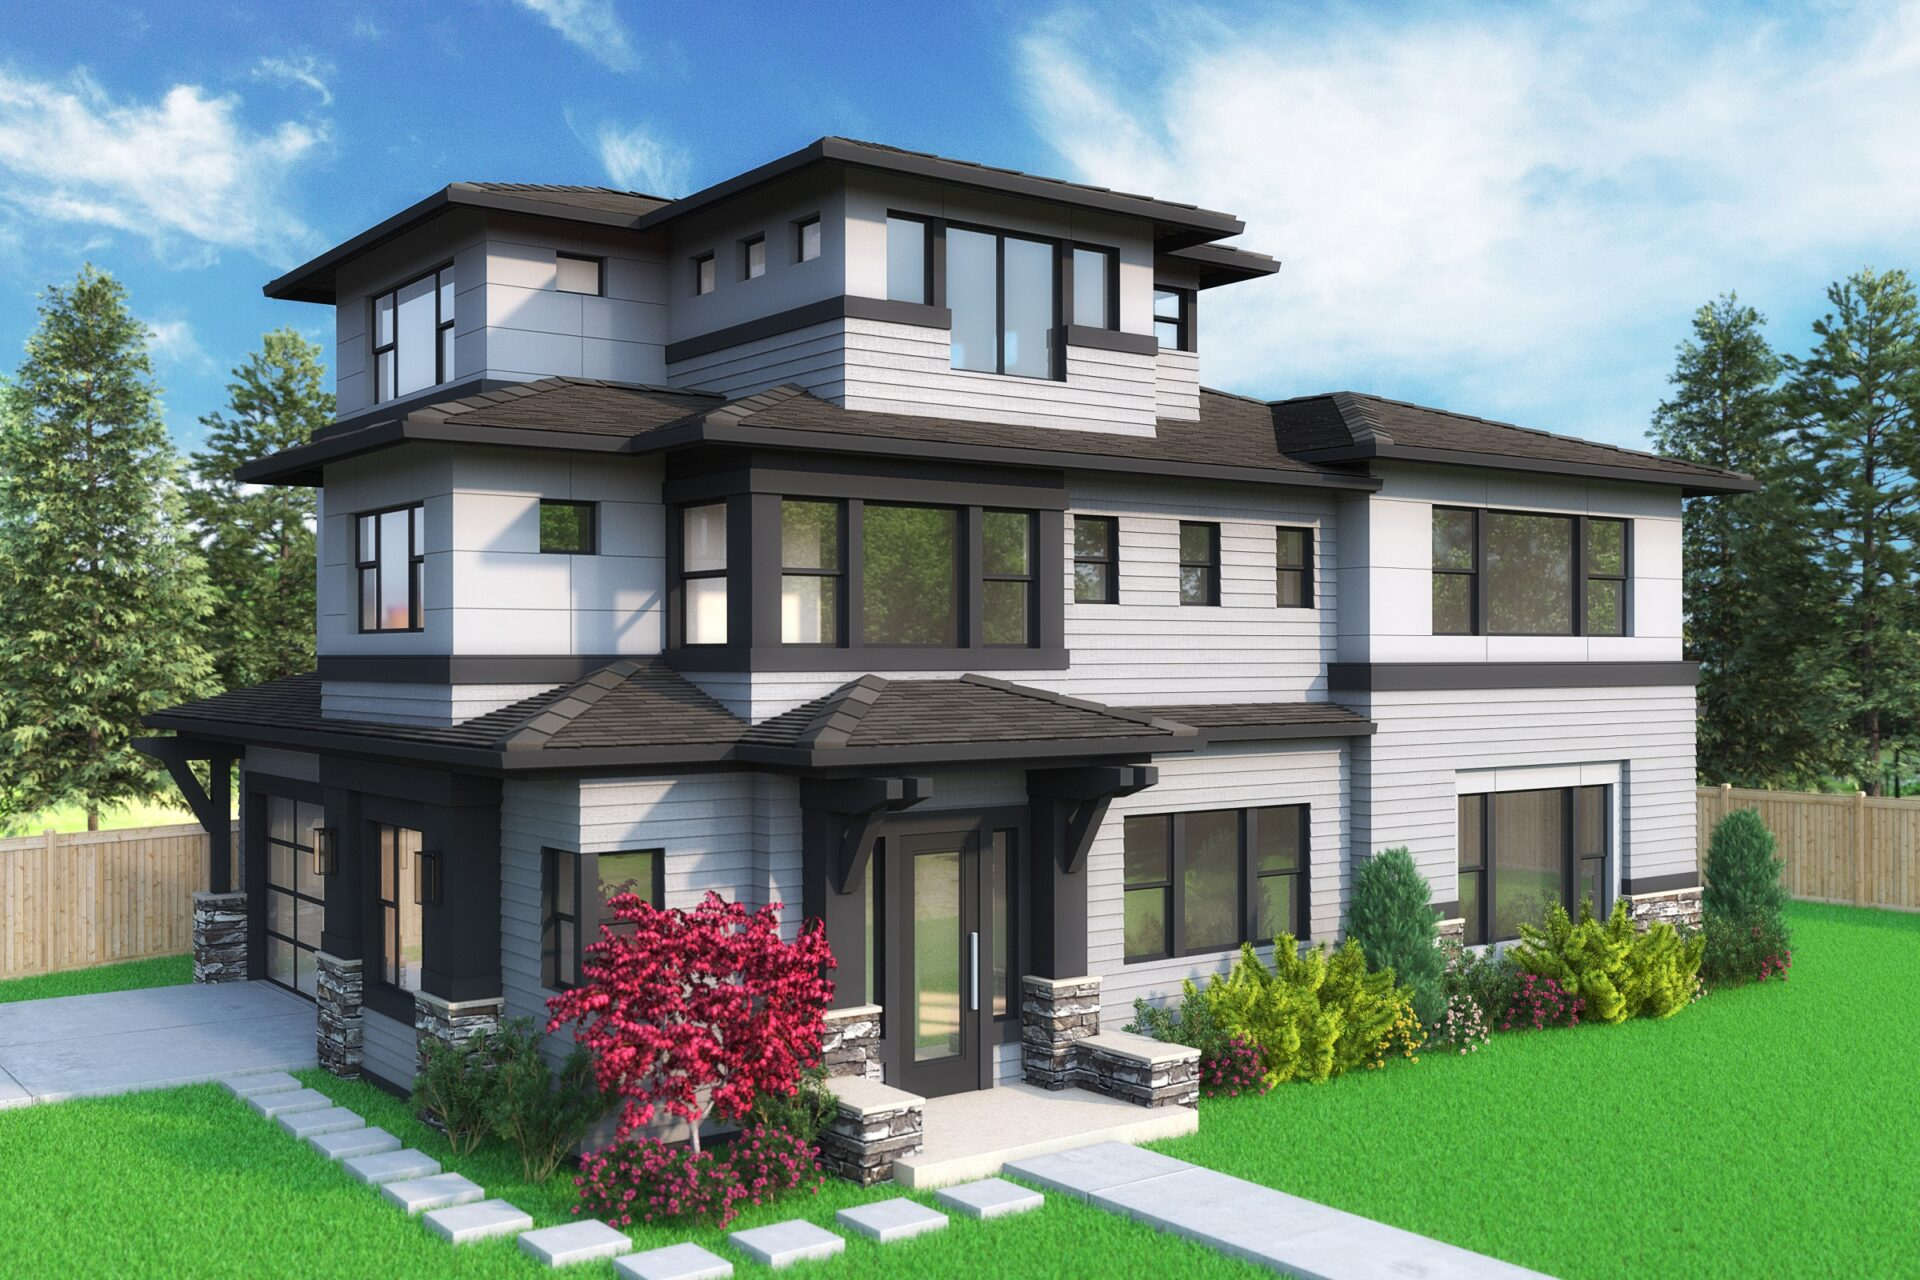 View our new luxury home construction on 16503-NE-13th-St-, in Bellevue, WA from MN Custom Homes